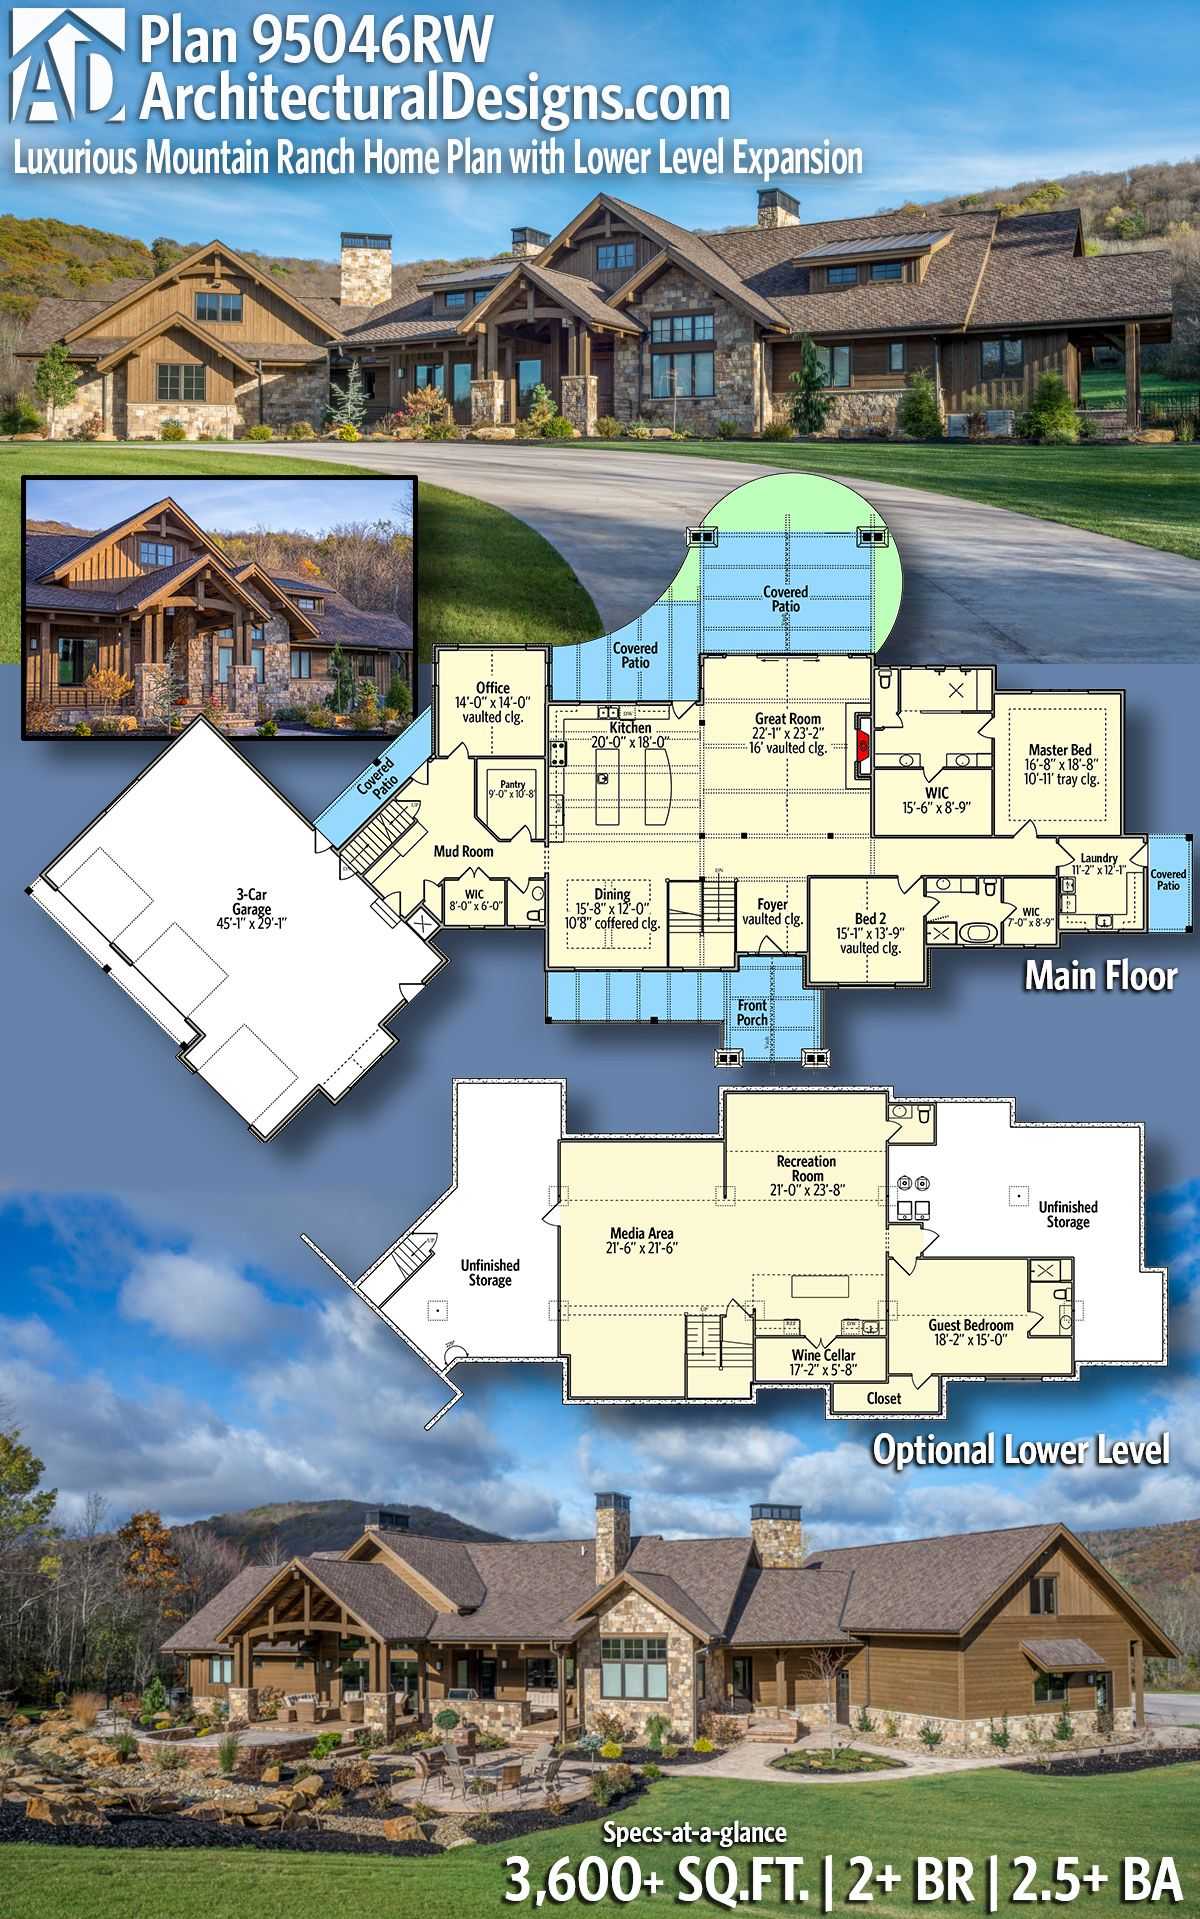 Plan 95046rw Luxurious Mountain Ranch Home Plan With Lower Level Expansion Ranch House Plans Architectural Design House Plans House Plans